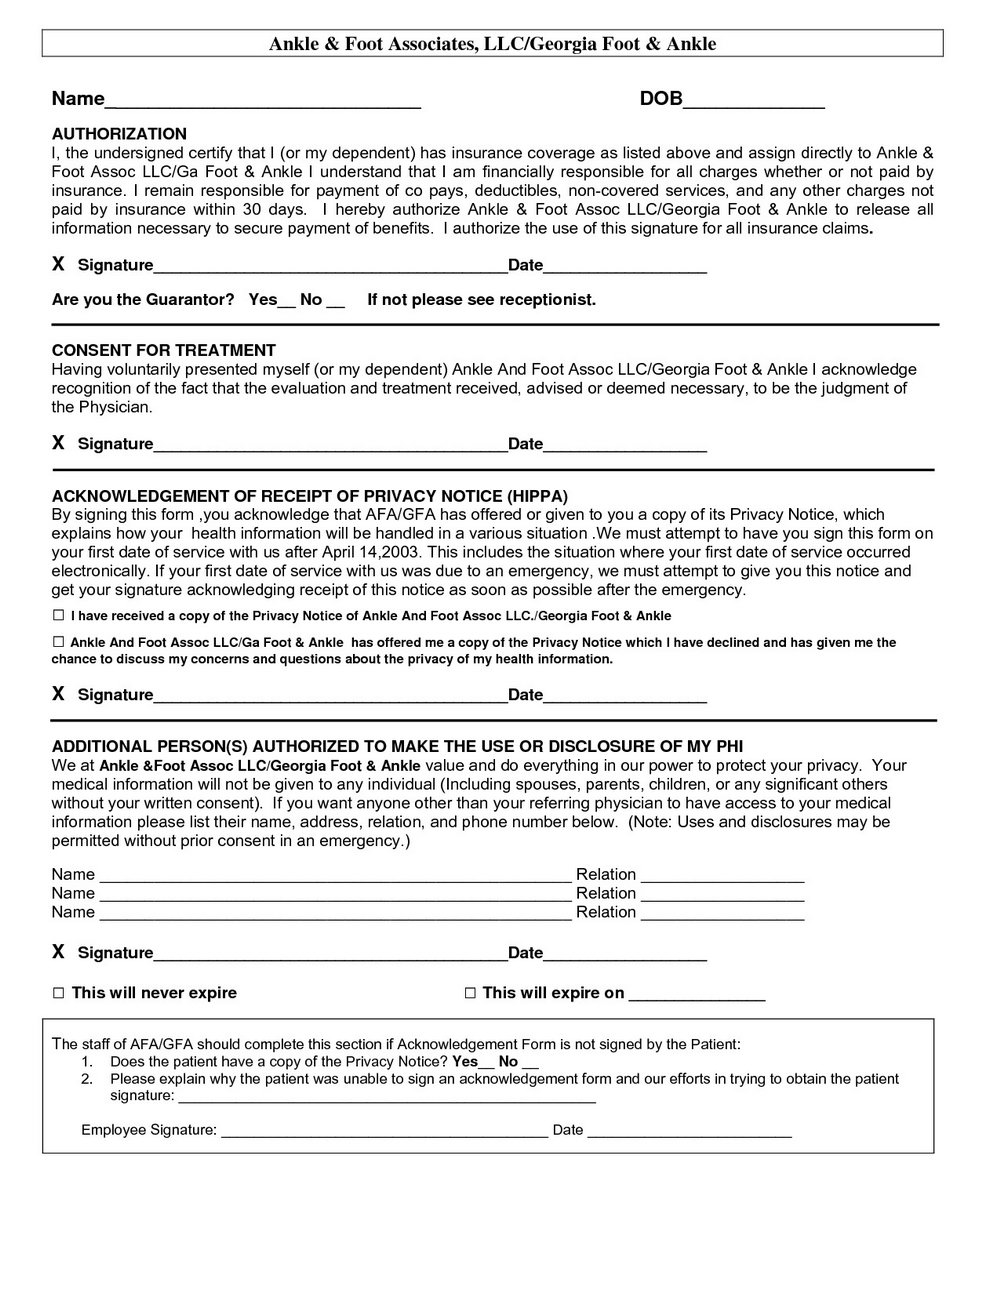 Hipaa Privacy Policy Form